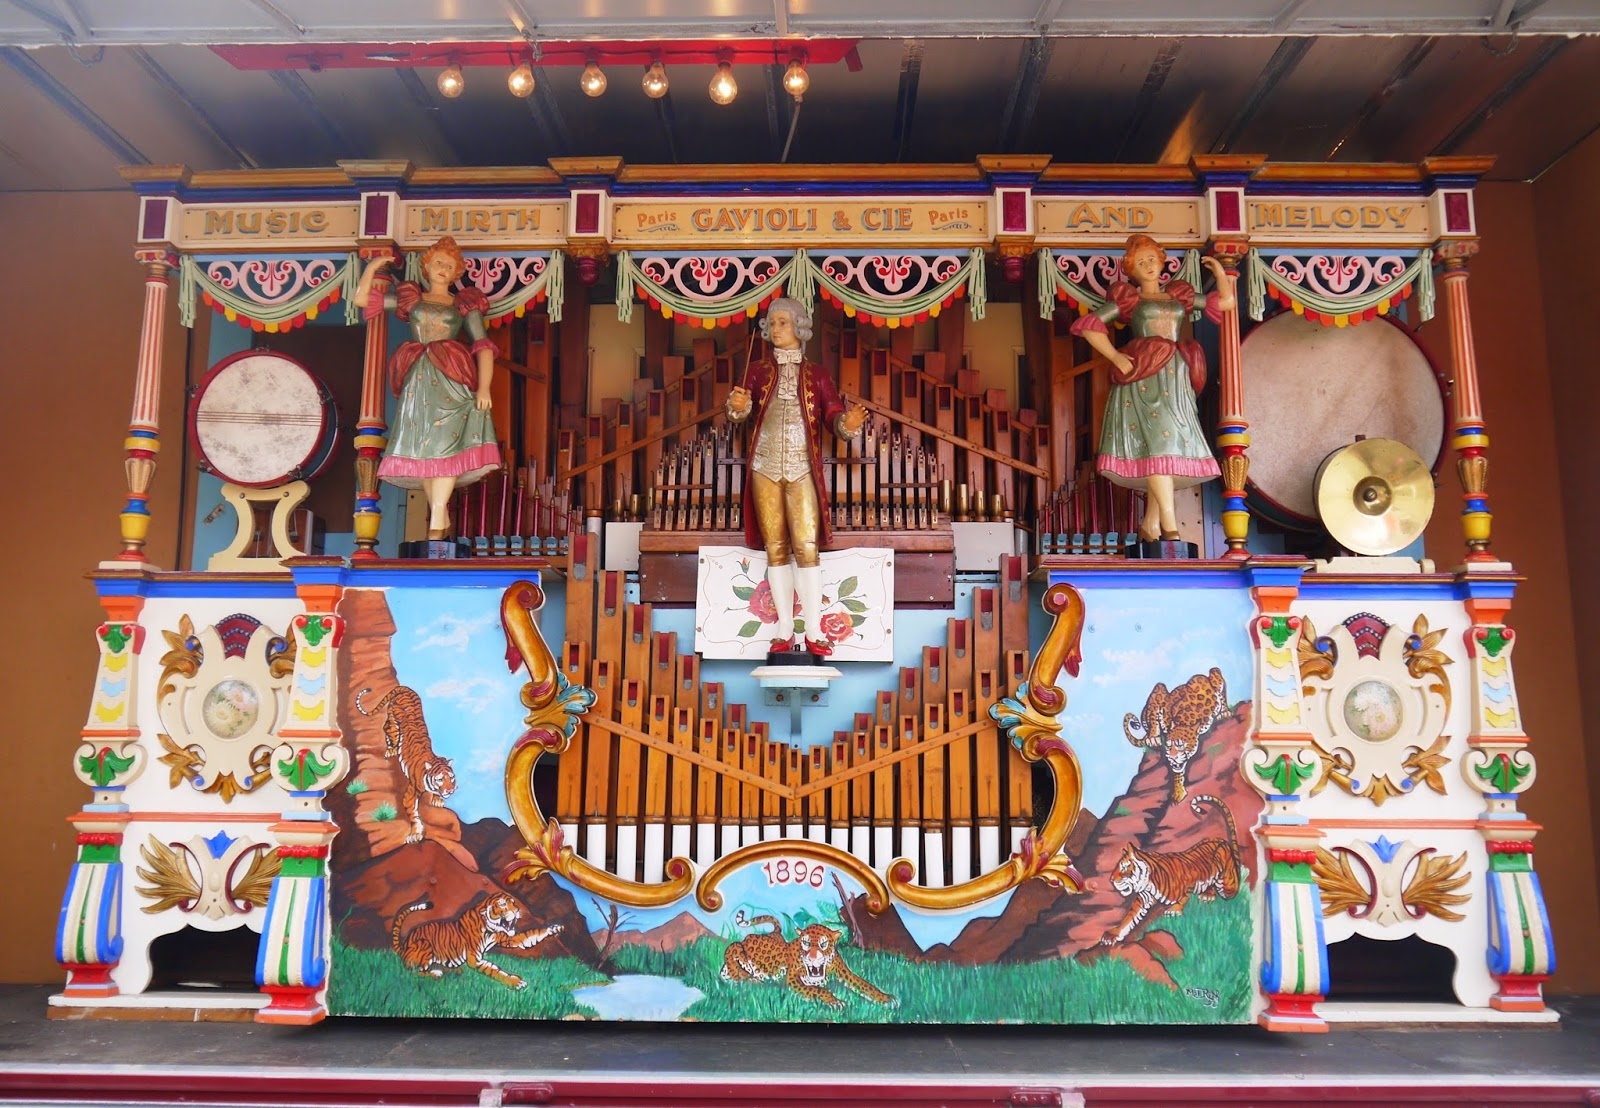 1896 fairground organ